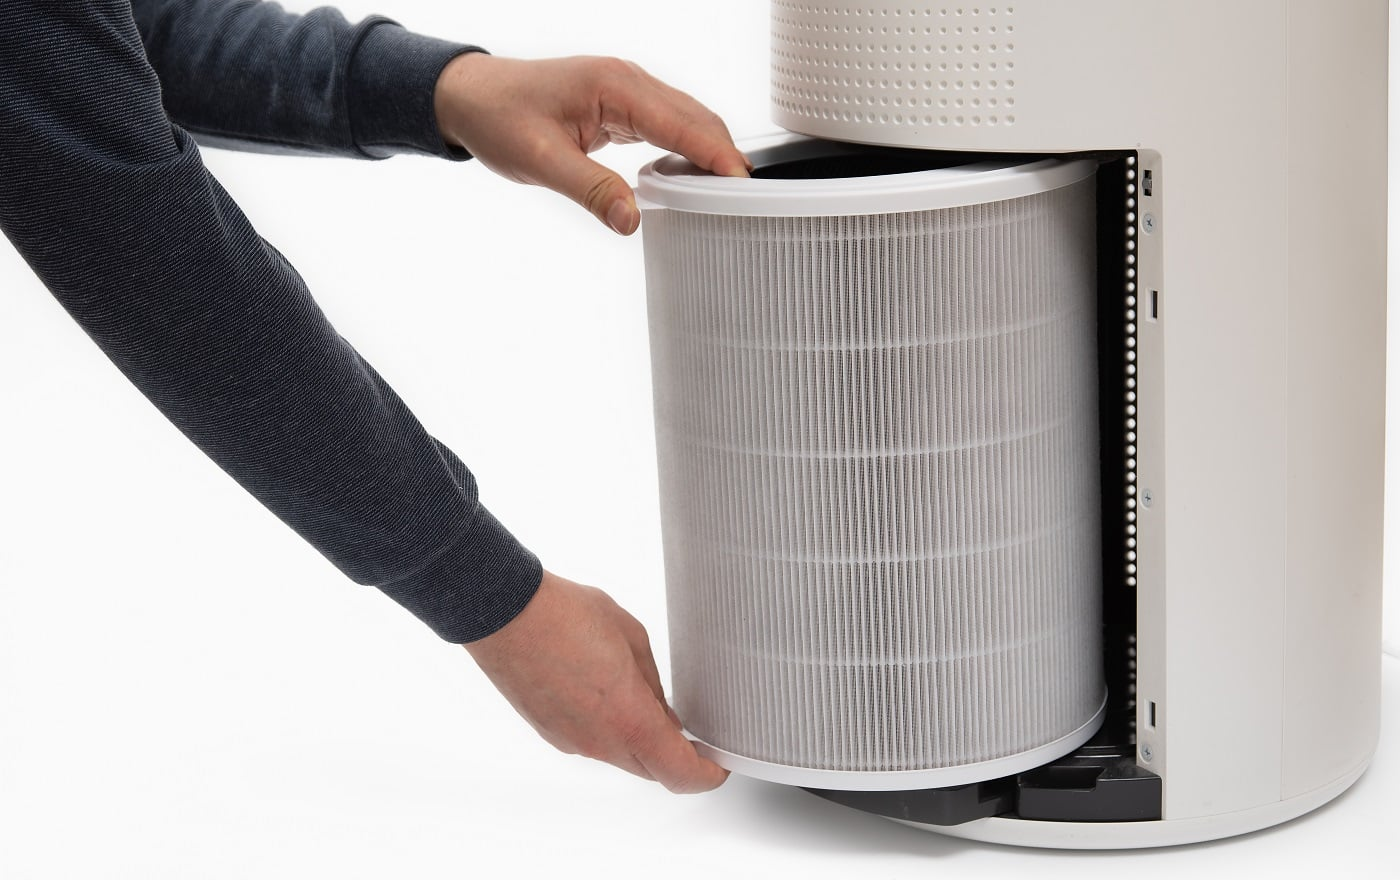 A man's hand turning an air purifier's filter into a new one